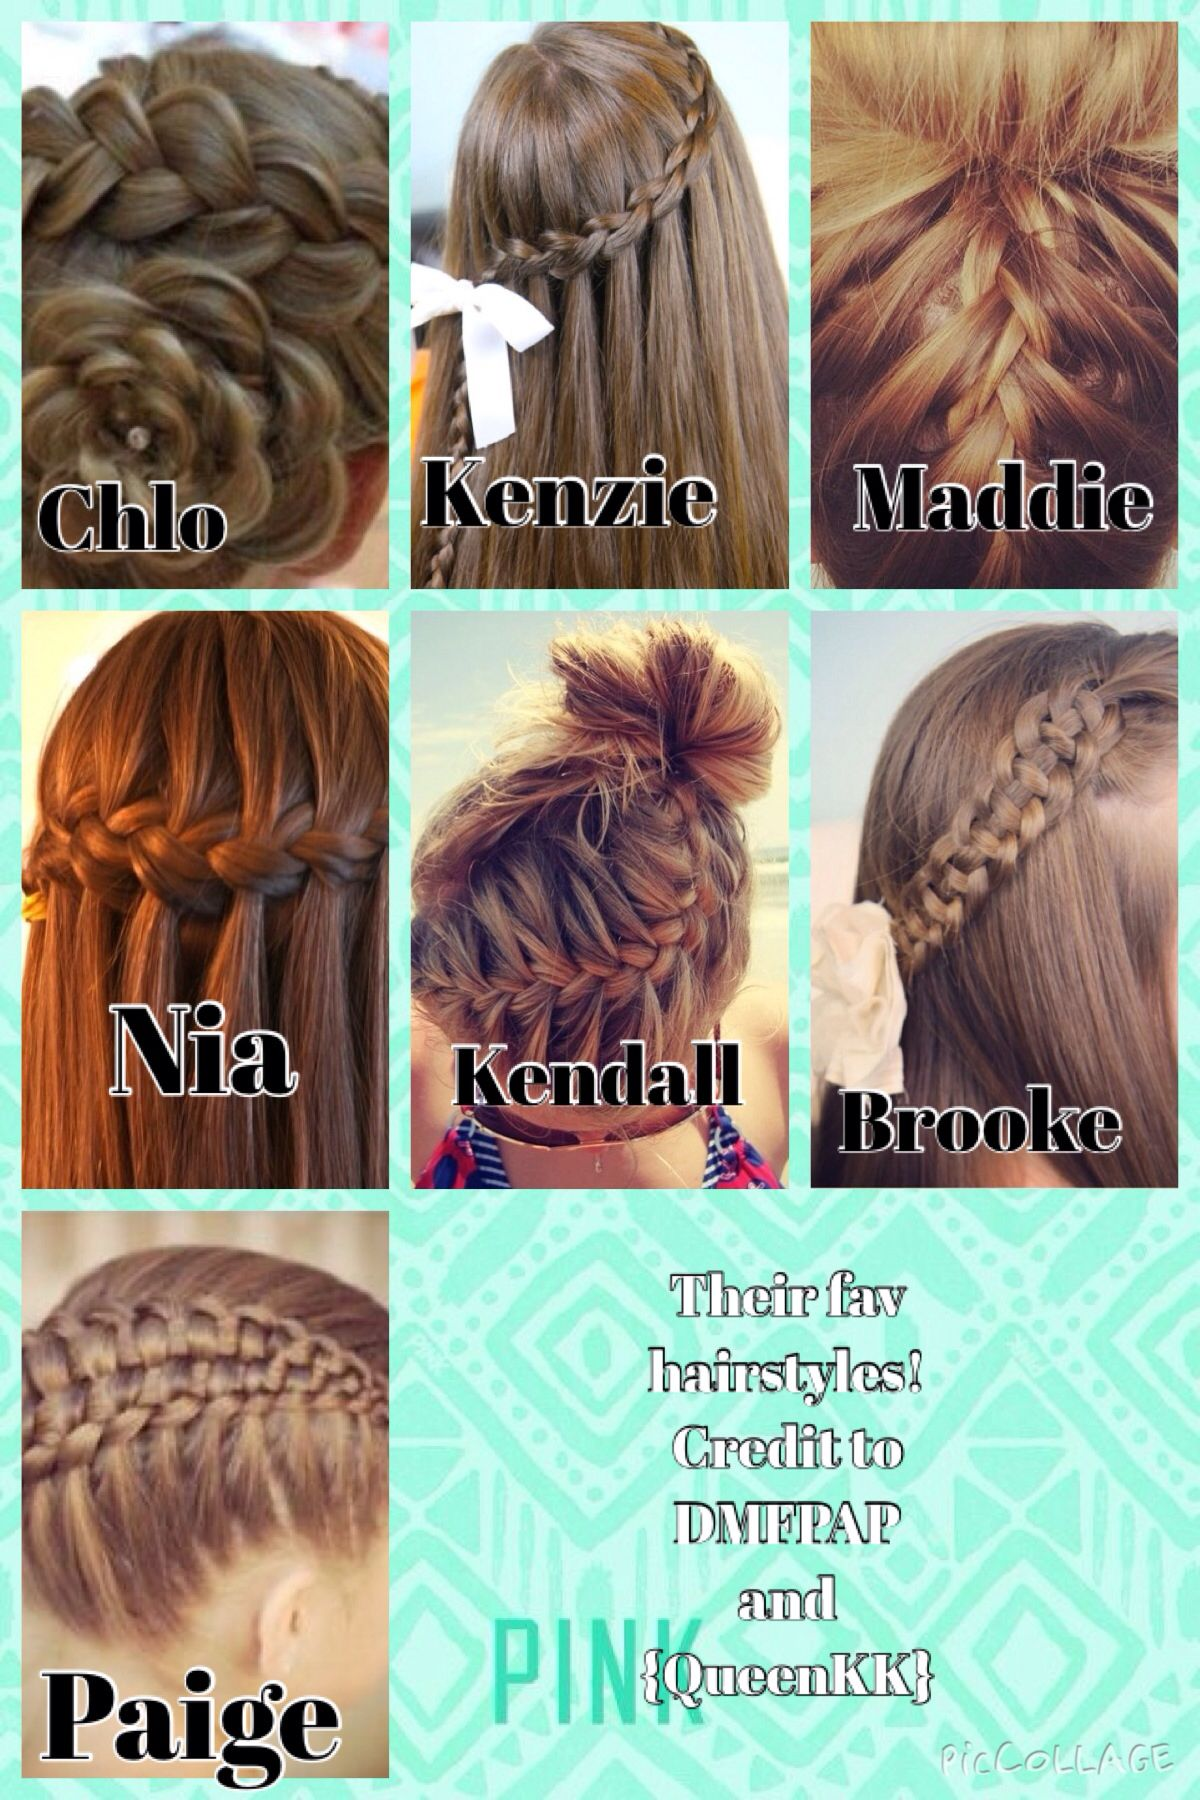 Comment Down Below Which One Of Their Favourite Hairstyles